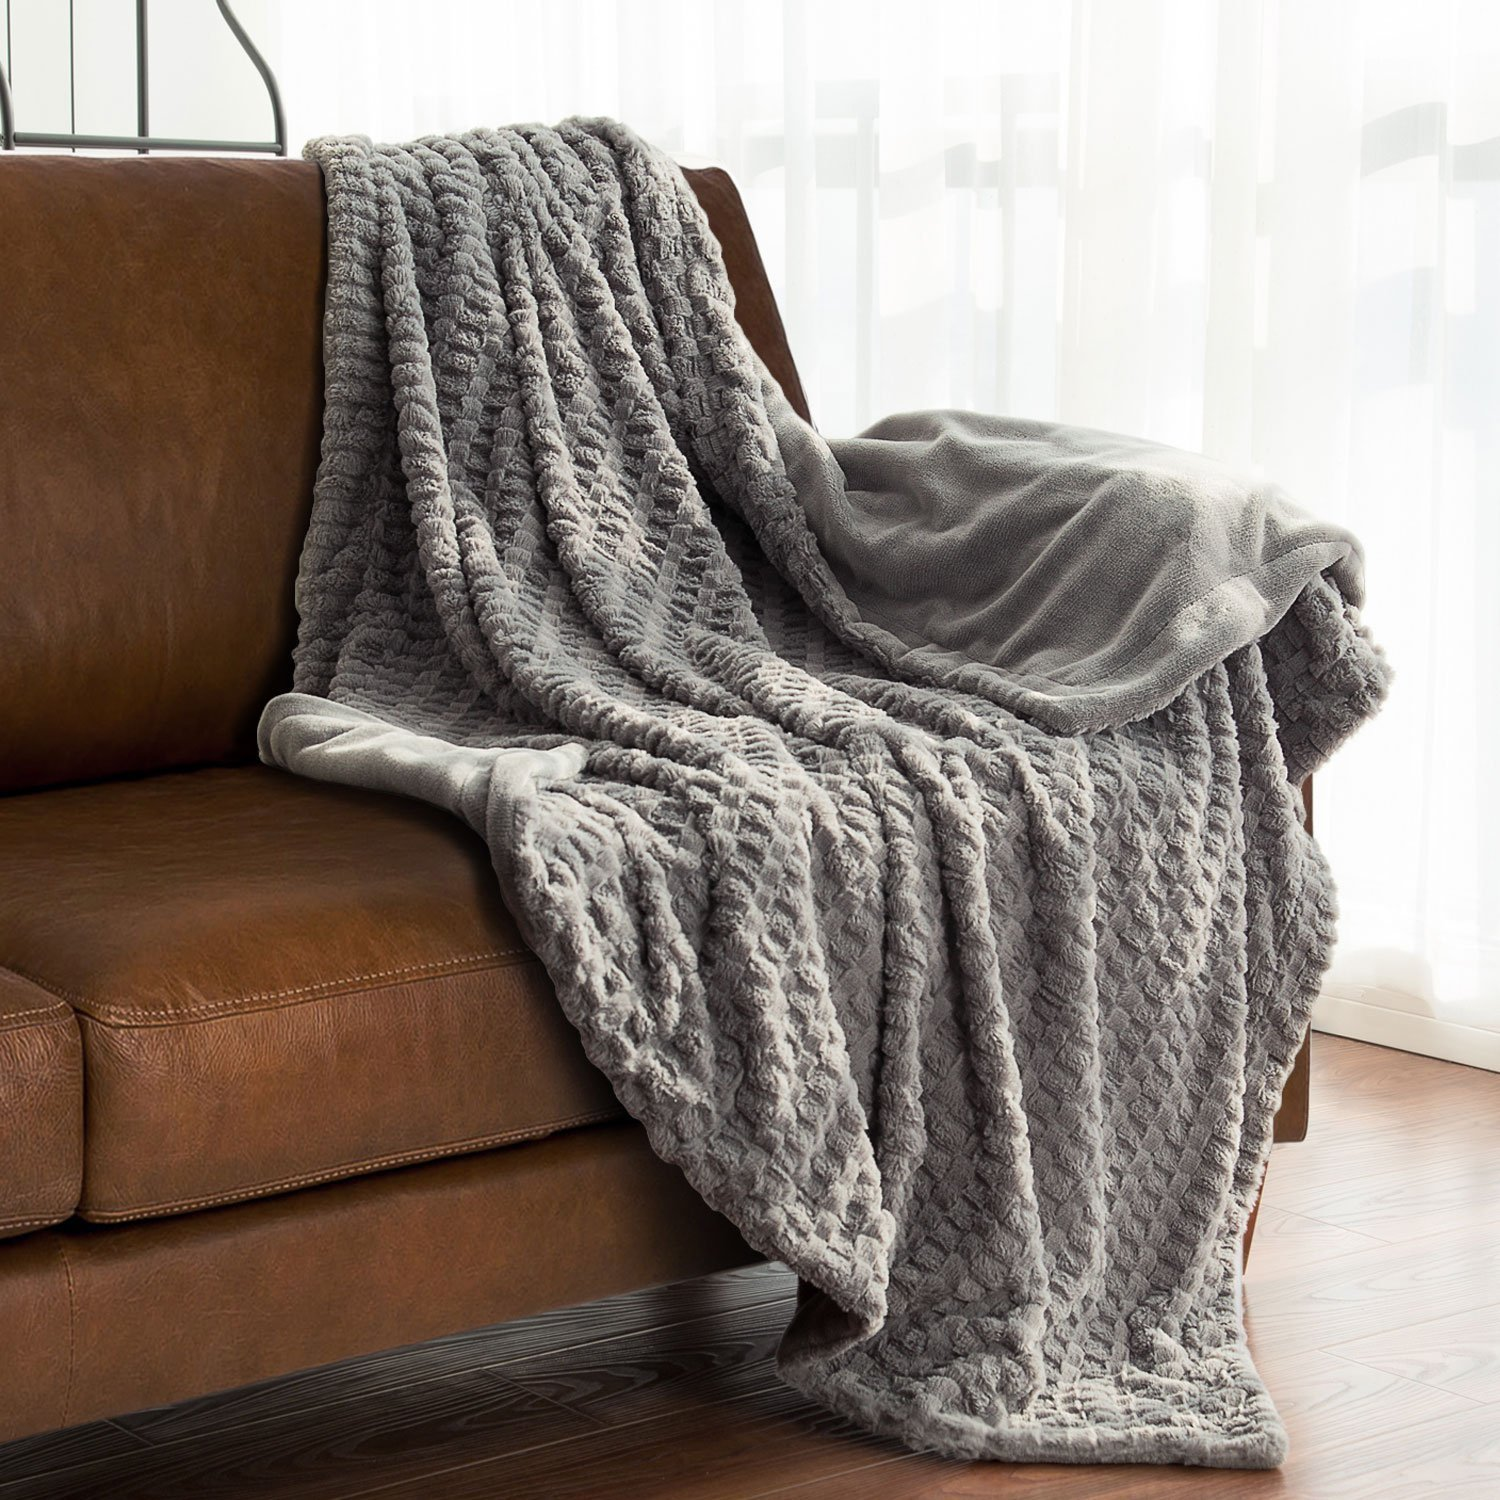 2. Simply Cover Your Couch with Throw via Simphome.com